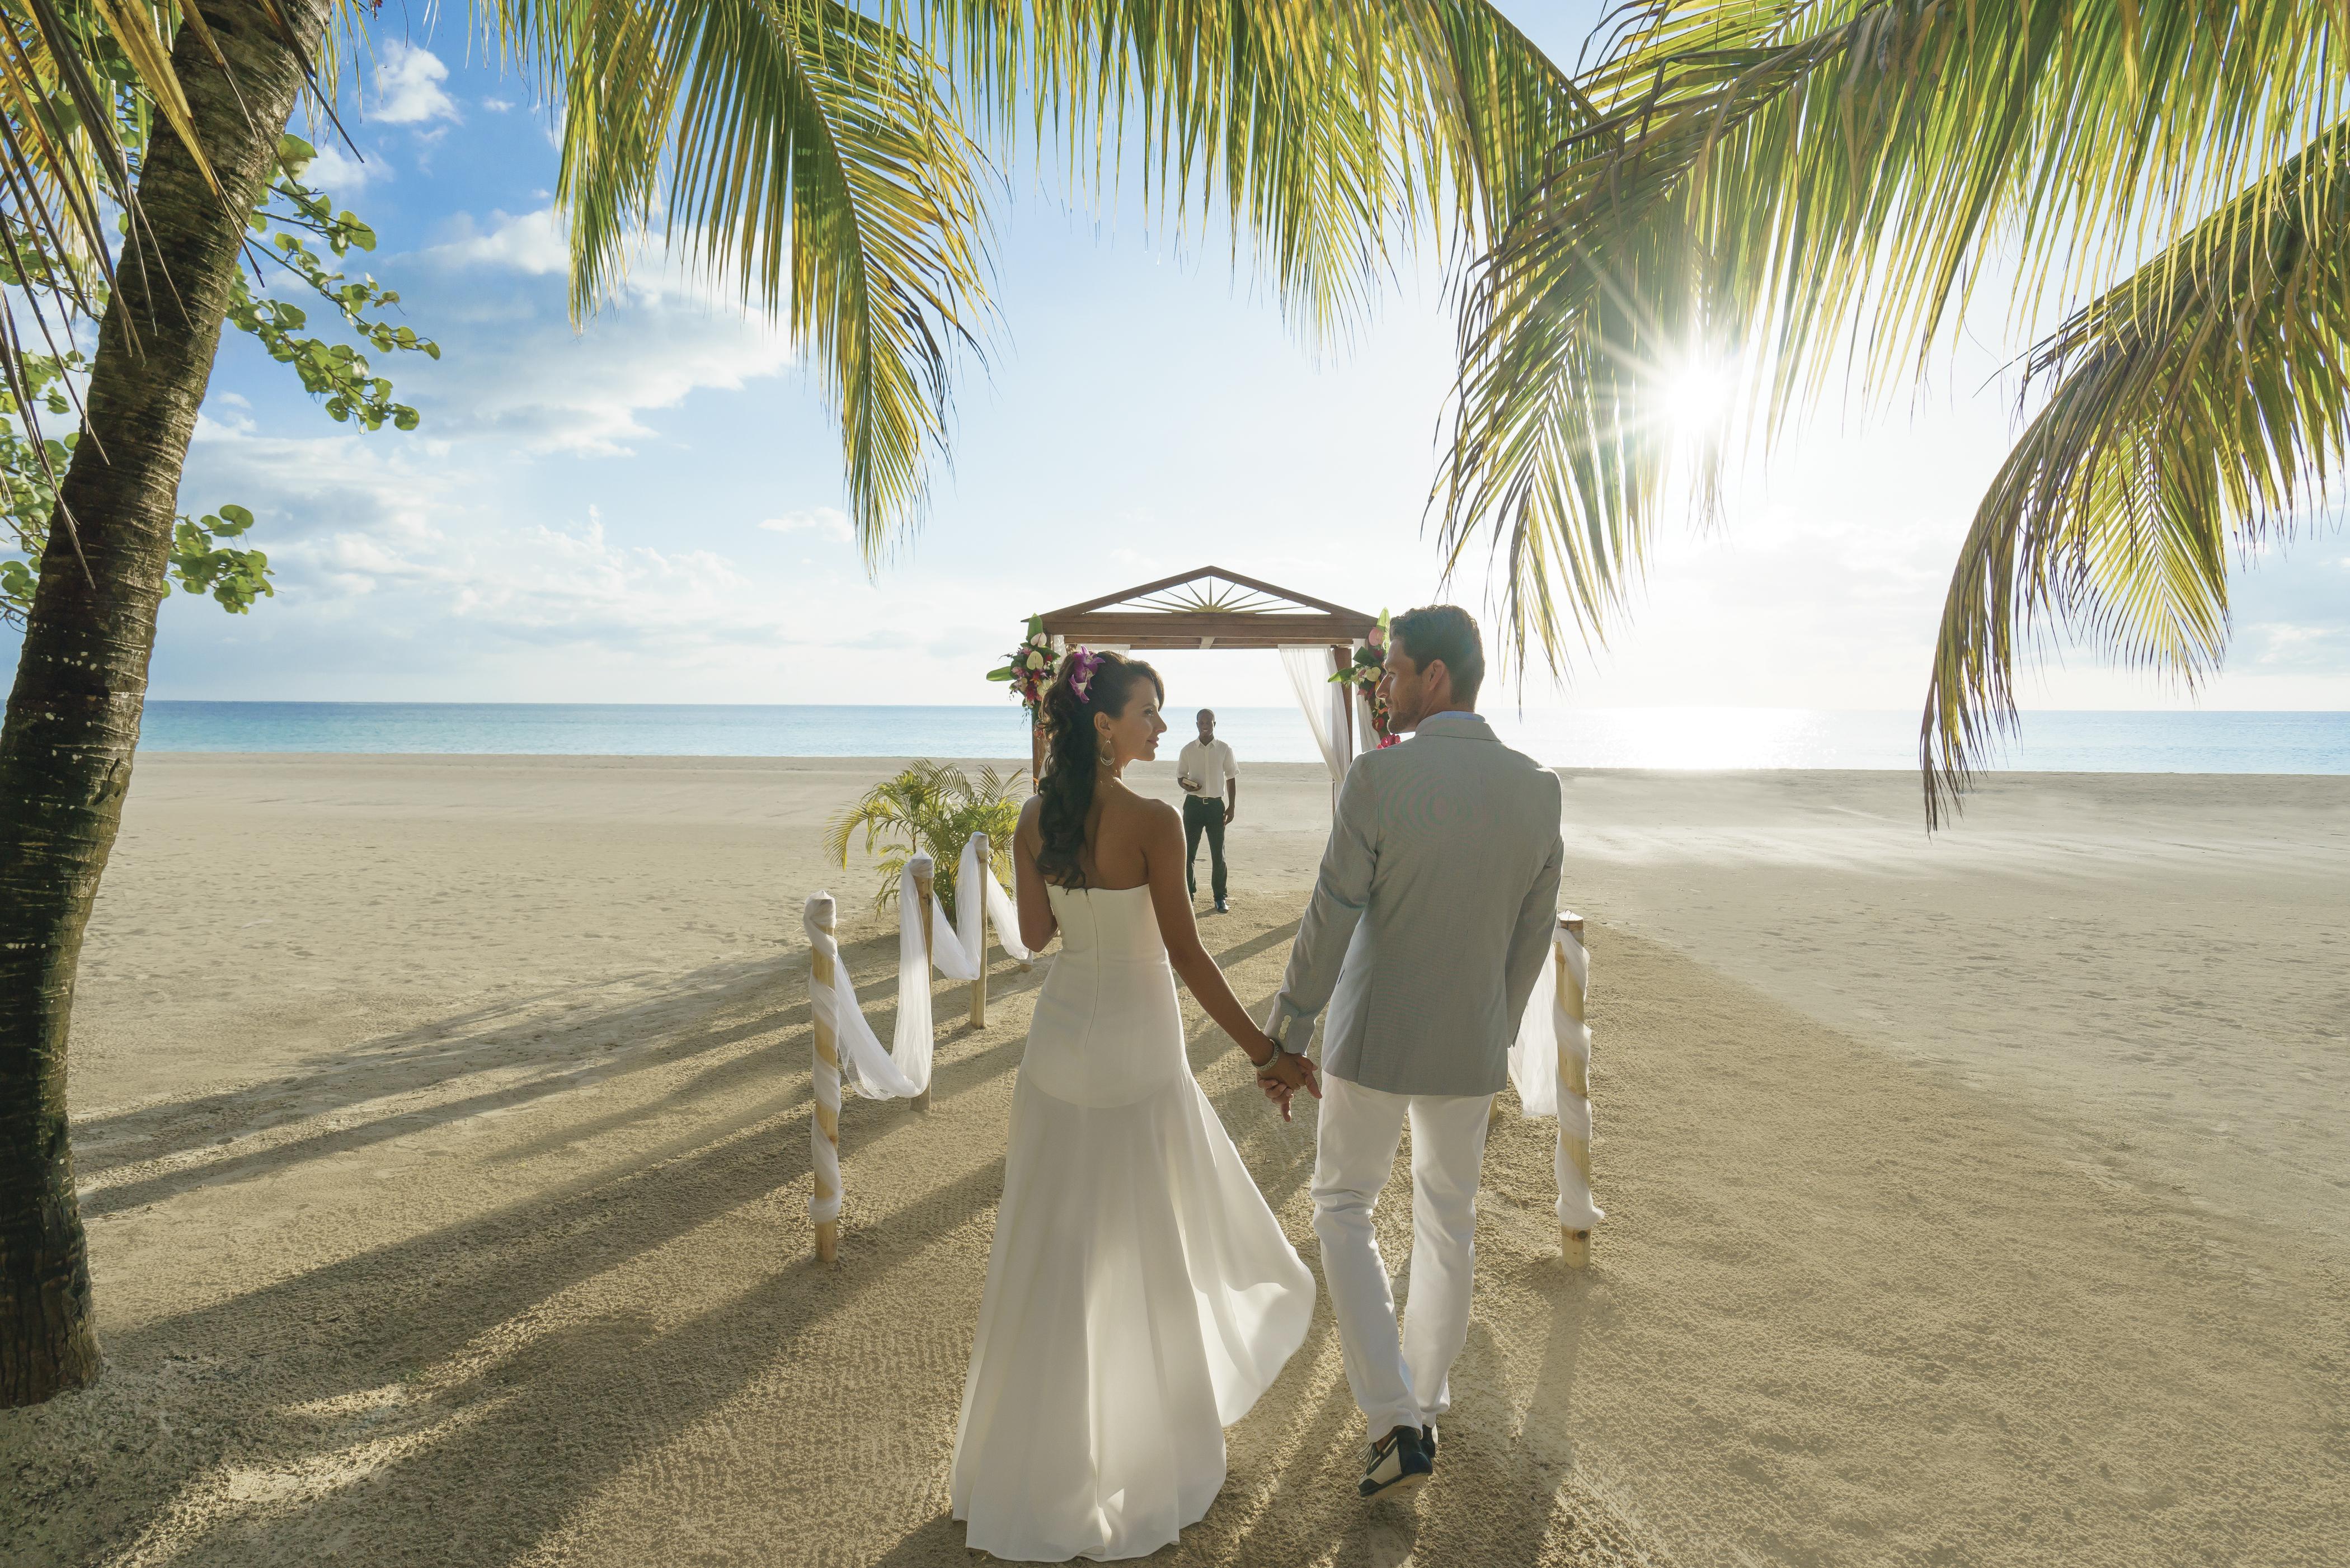 Travel Agency All-Inclusive Resort Couples Swept Away 11